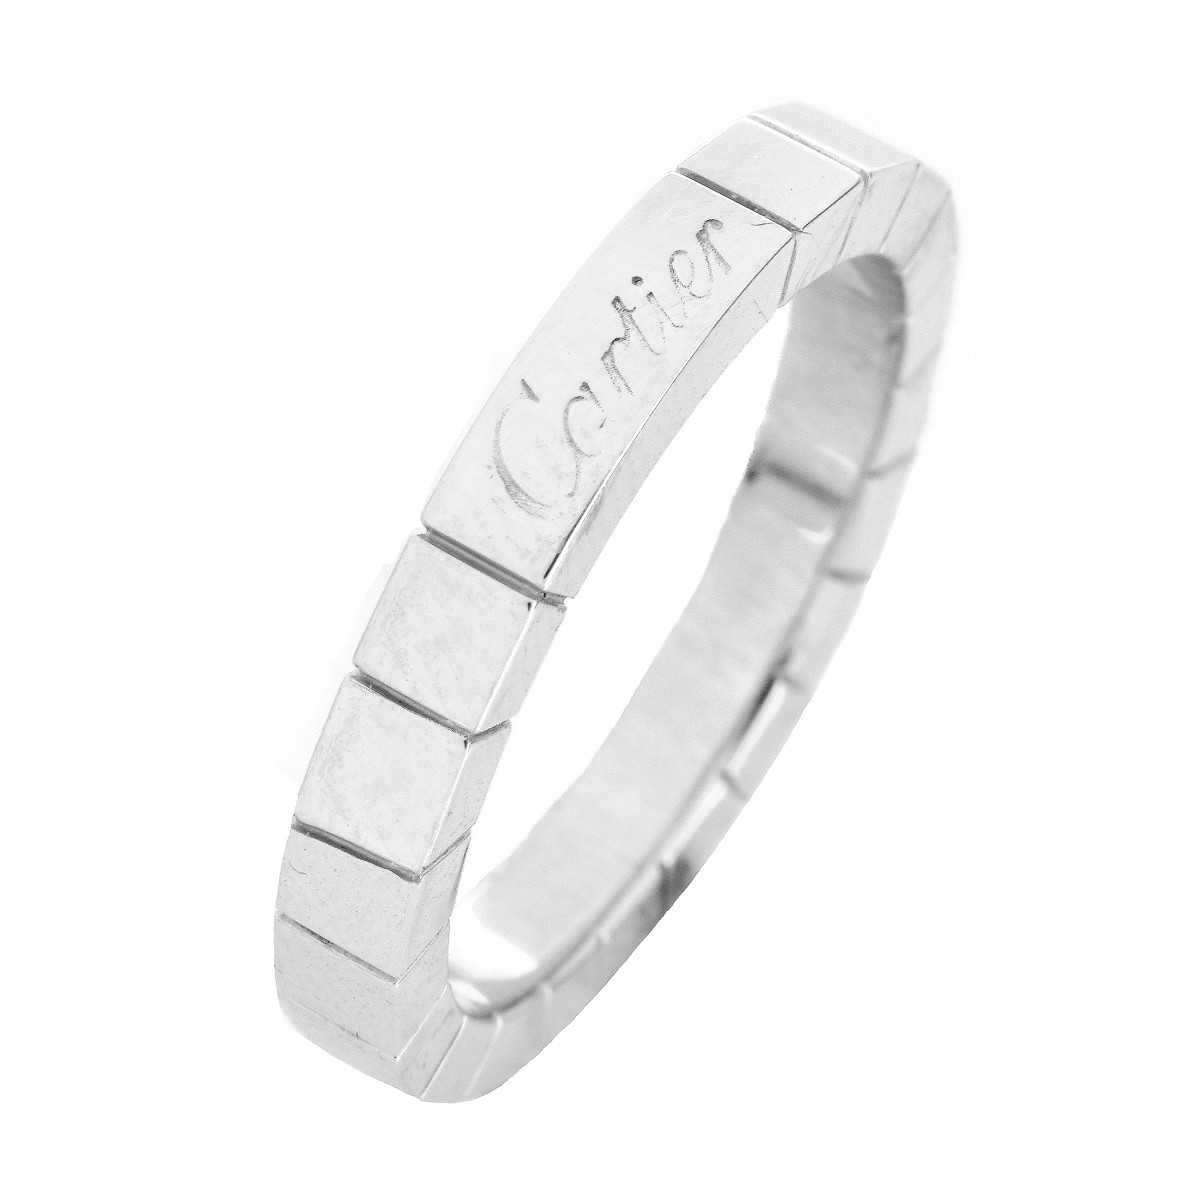 Cartier 18K White Gold Laniere Ring